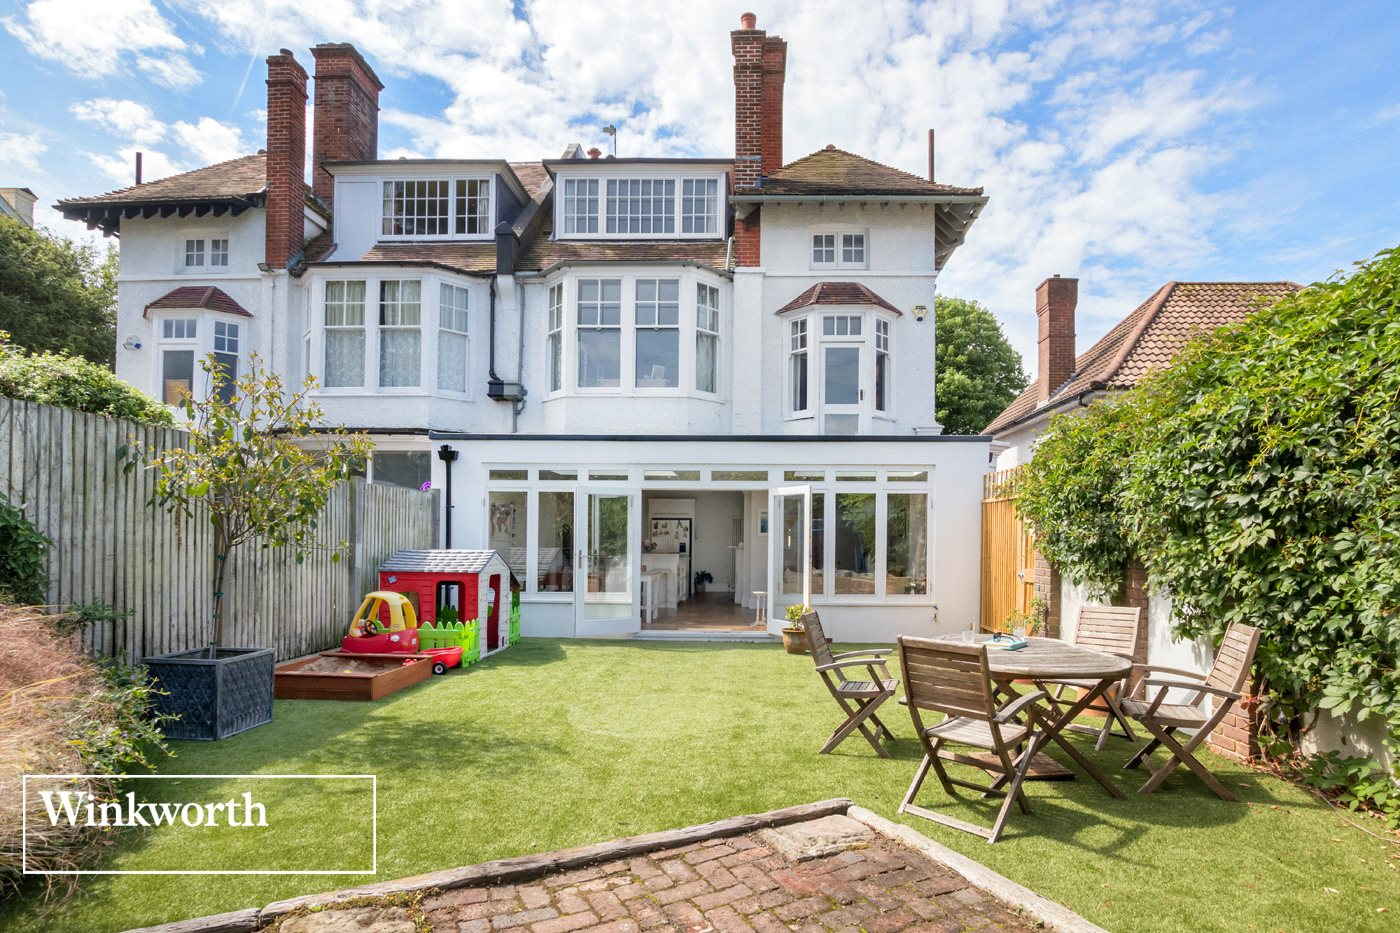 6 Bedrooms Semi Detached House for sale in Temple Gardens, Brighton, East Sussex, BN1